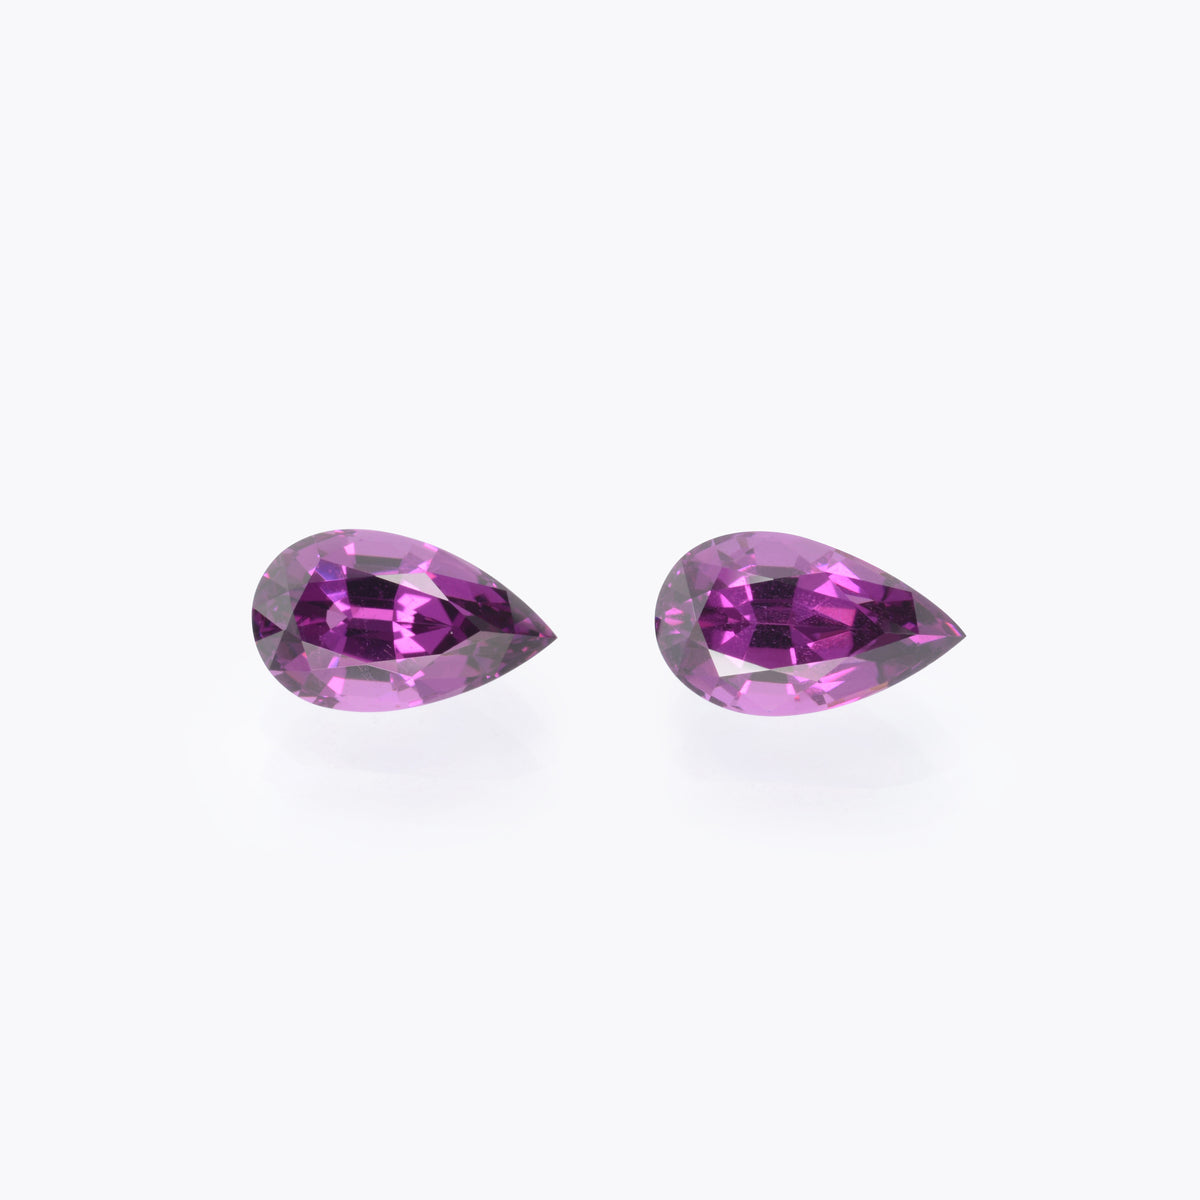 Royal Purple Garnet #318221